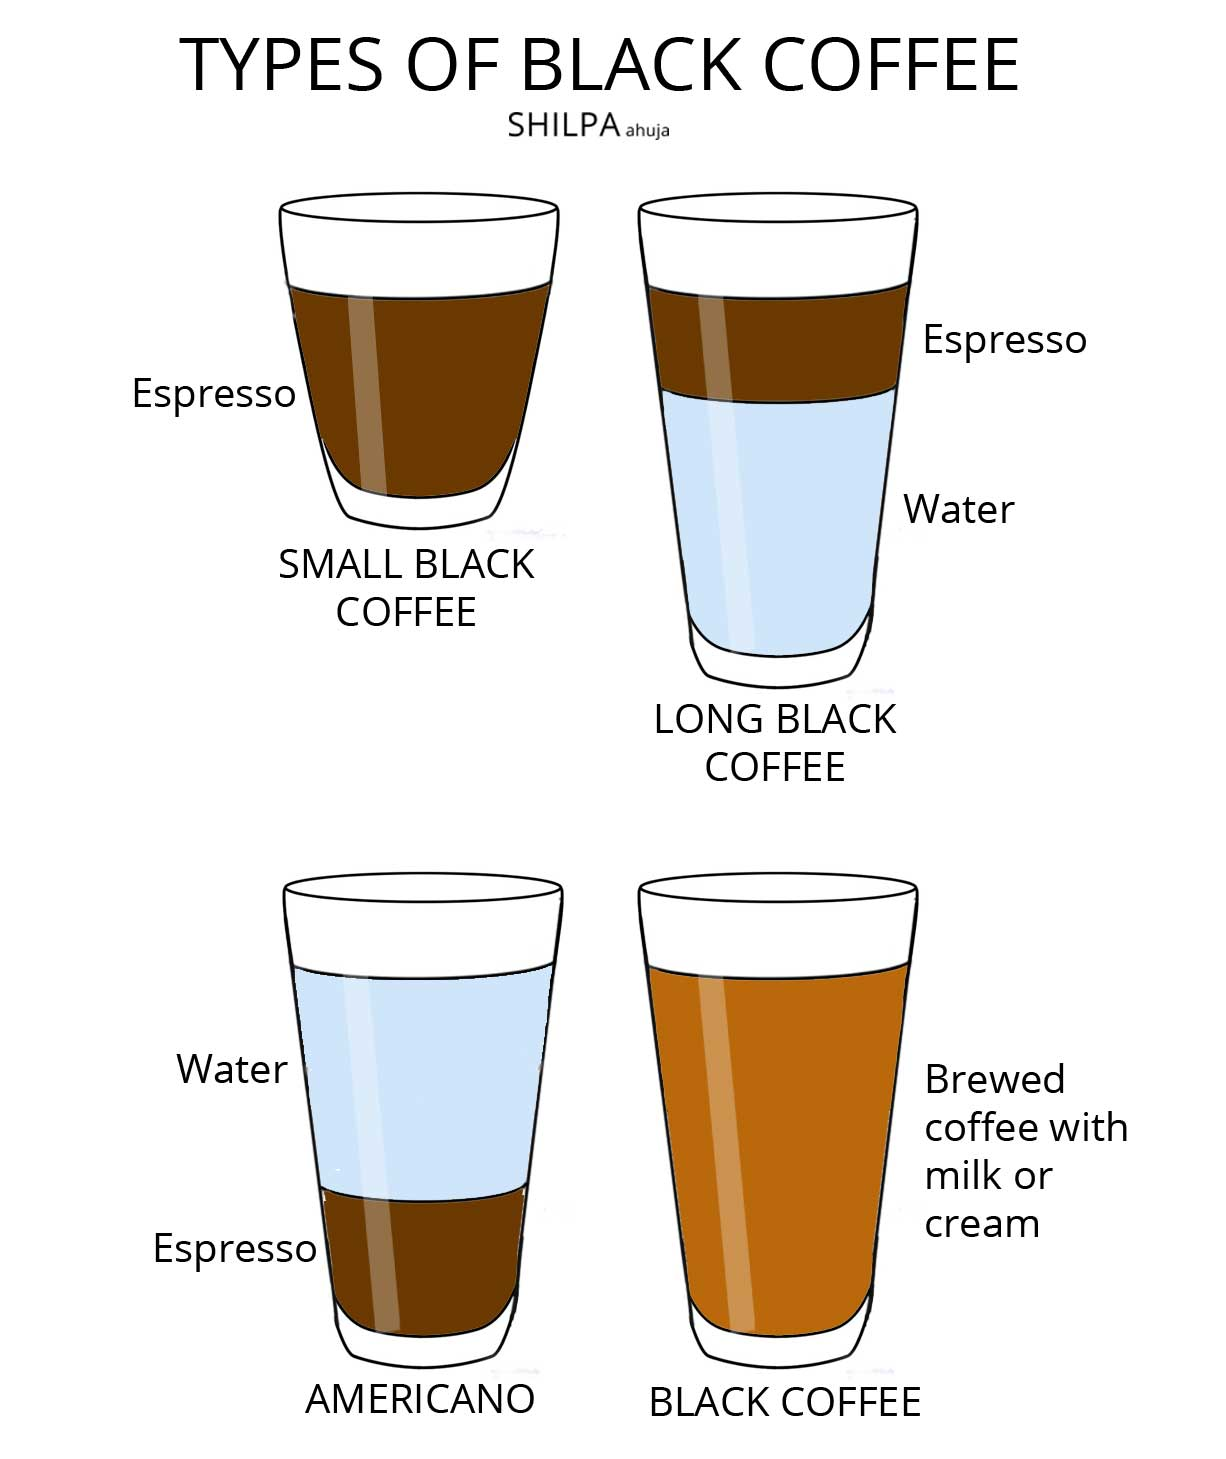 types-of-coffee-long-black-americano-espresso